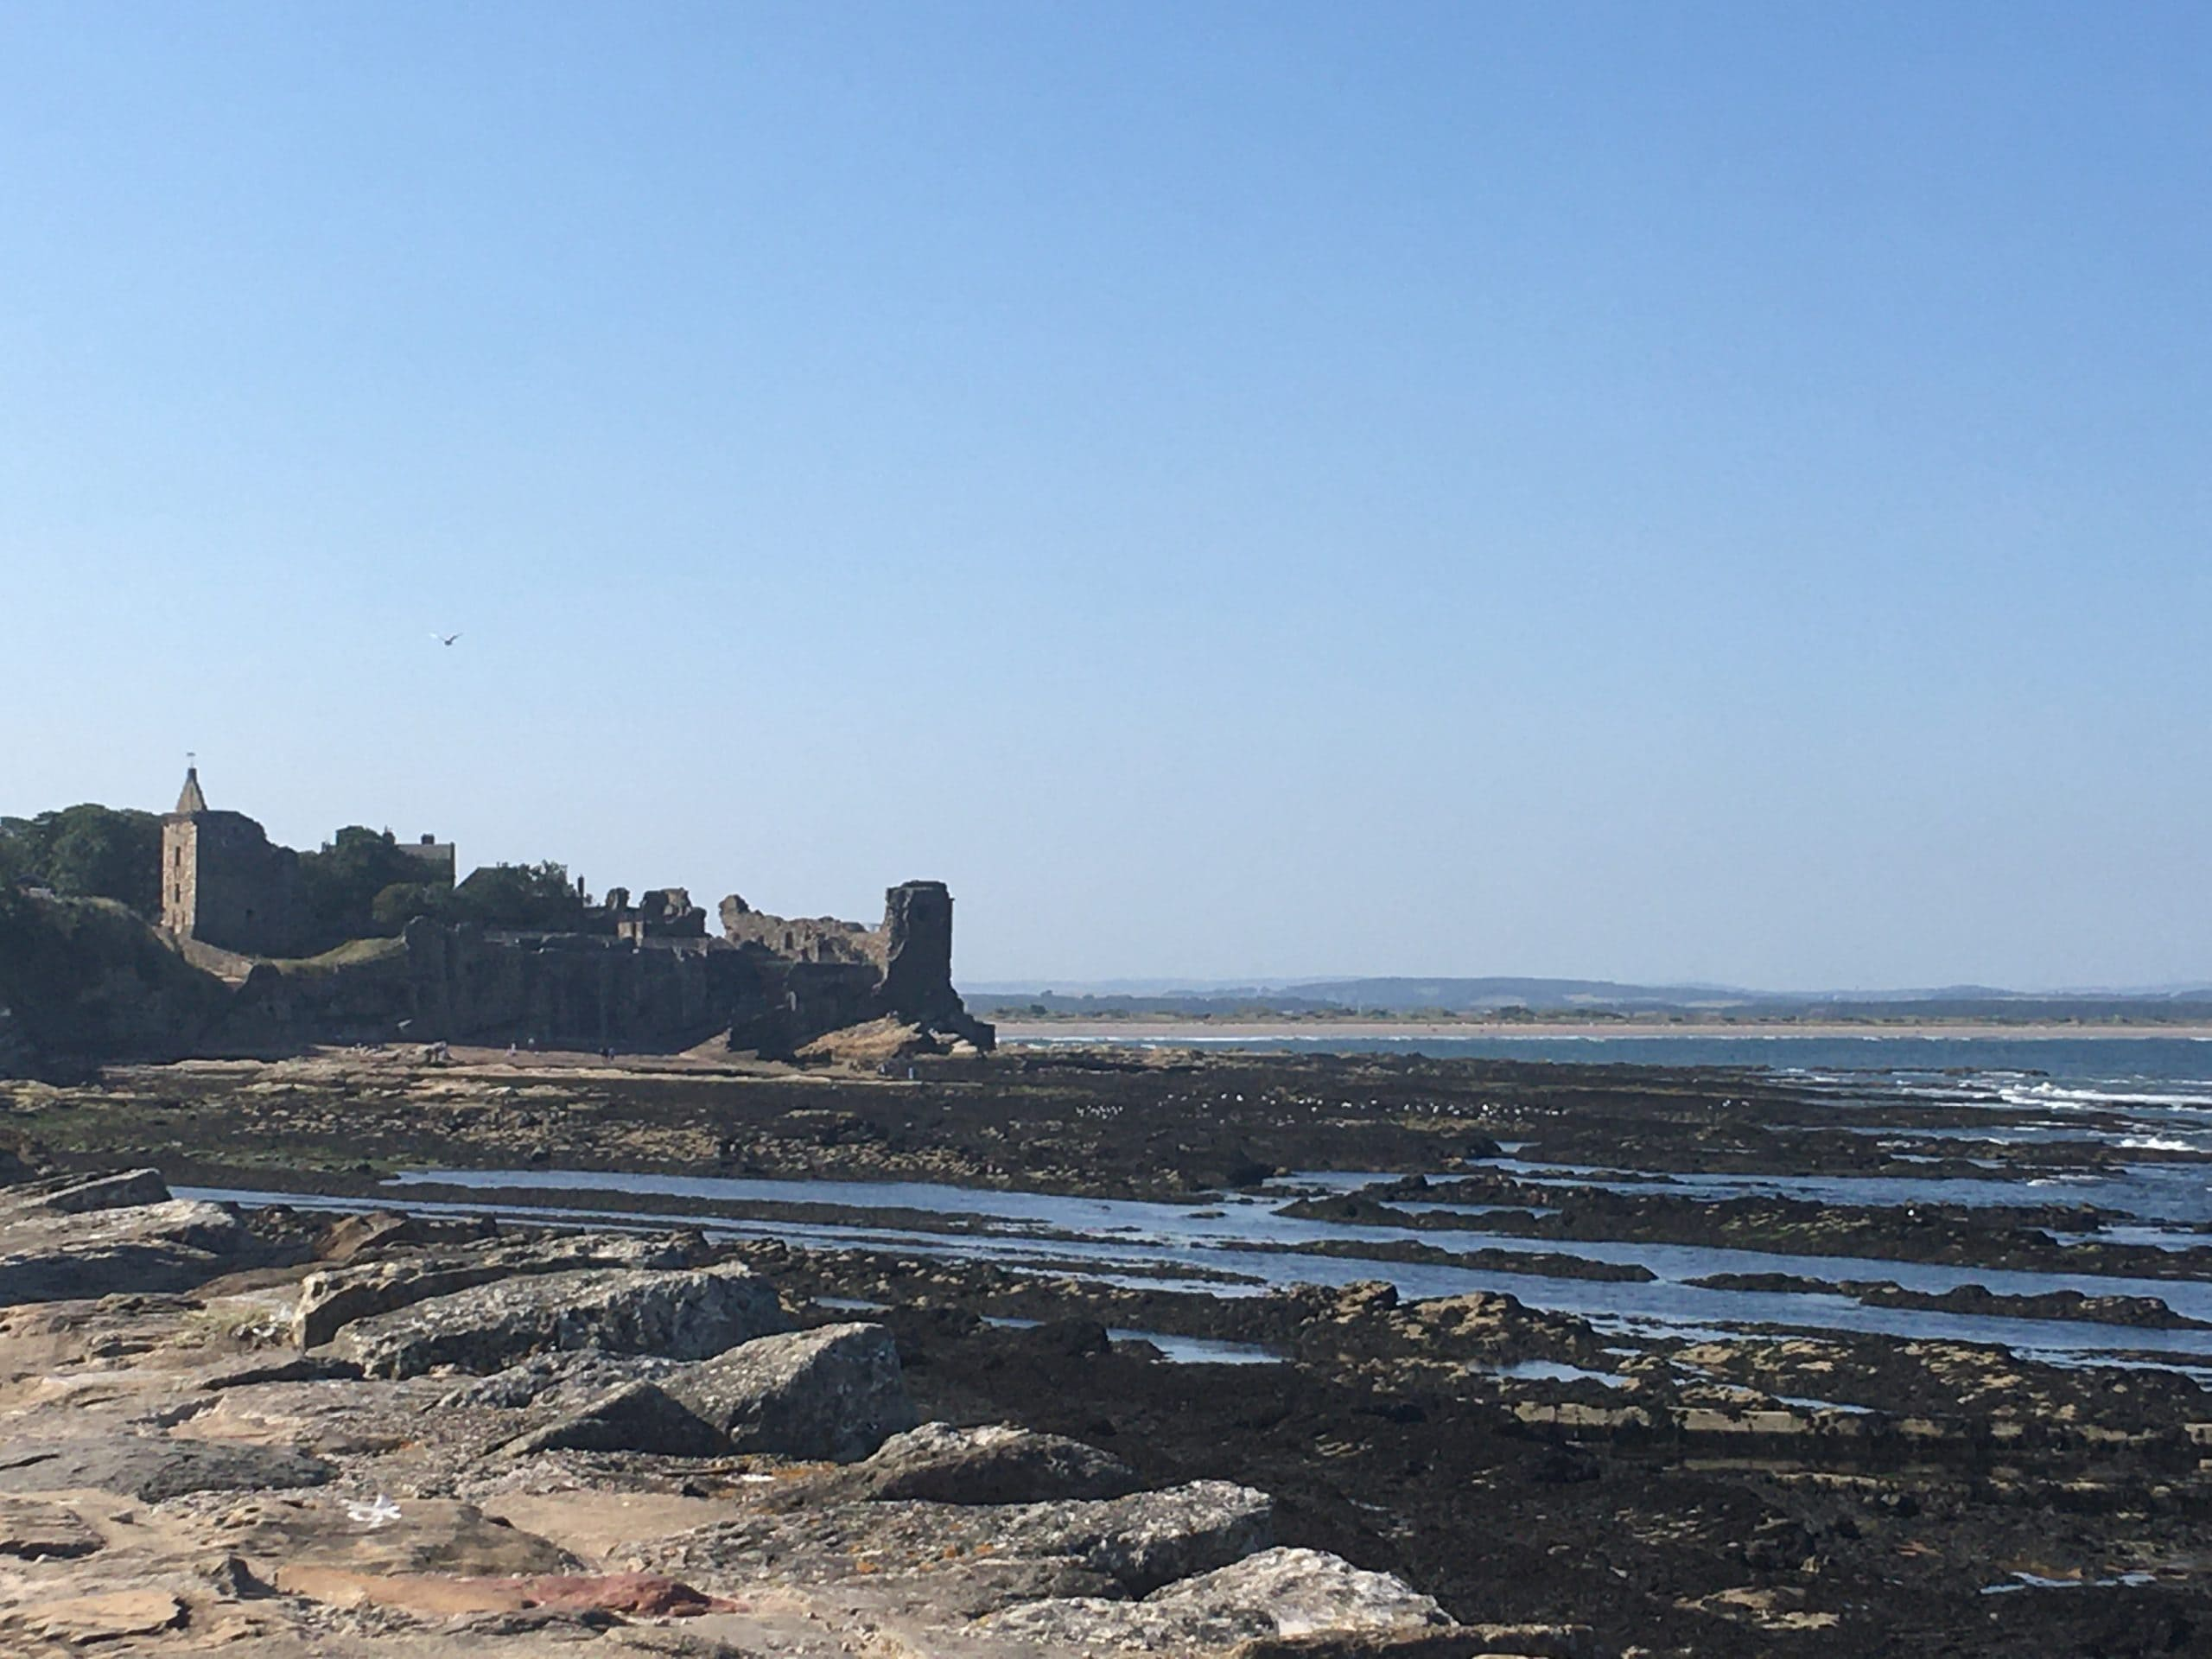 Looking back at the Ruined Castle